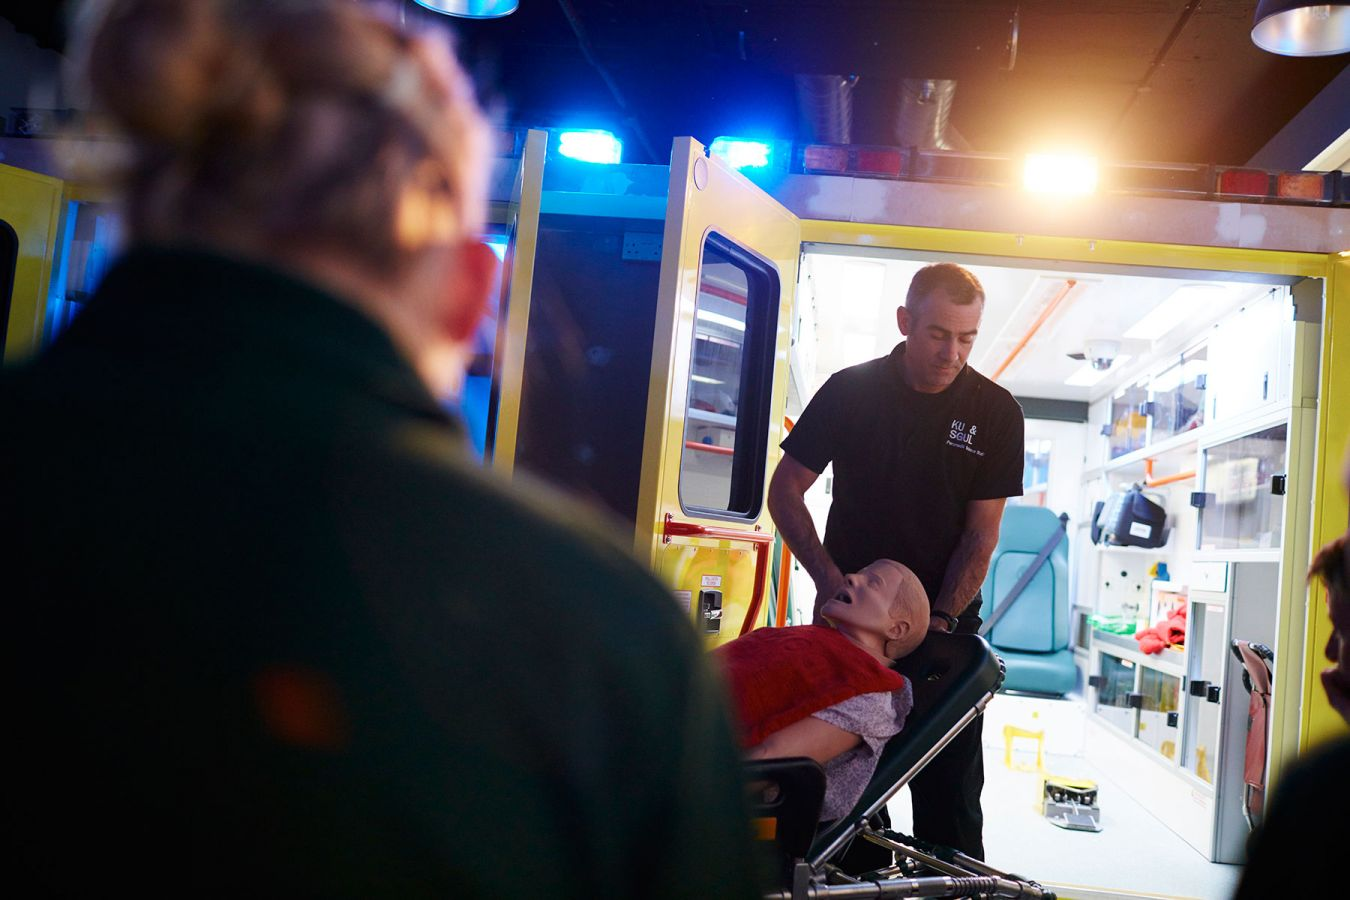 Trainee paramedics have the chance to practice their clinical skills within the confines of the back of a fully kitted out ambulance.